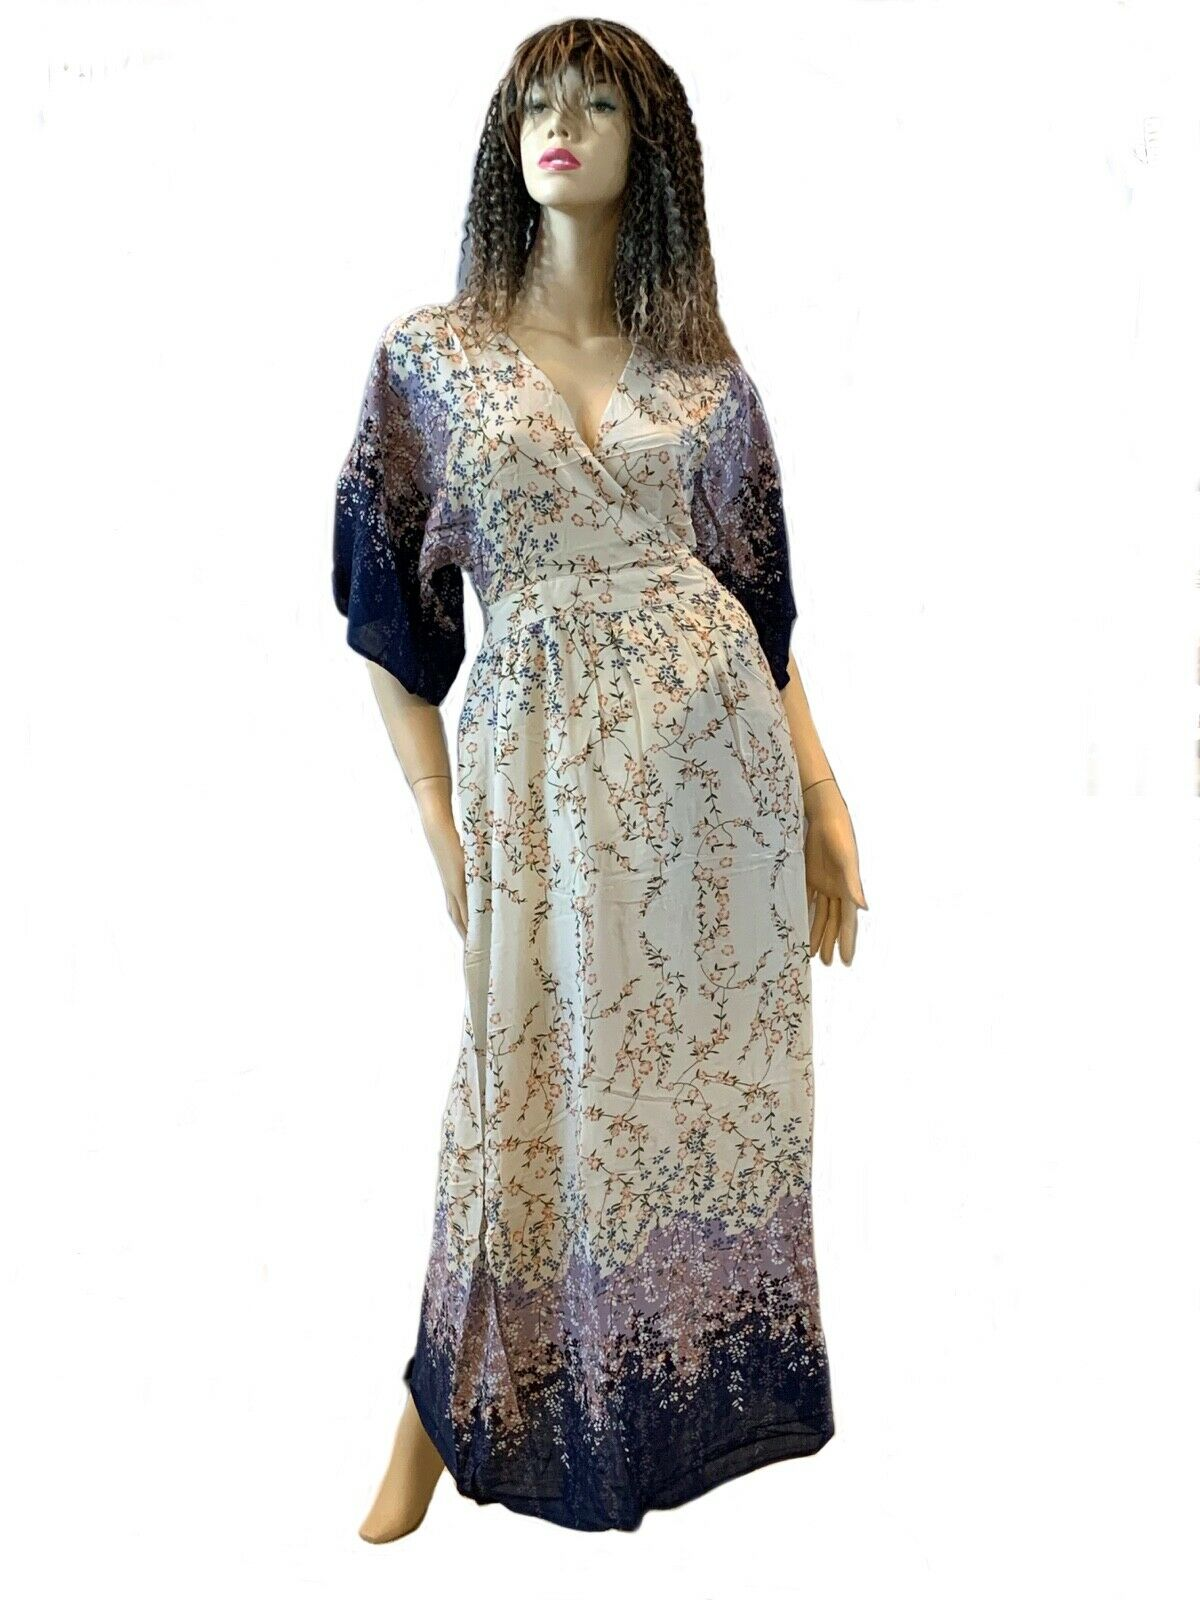 Image 2 of Dainty Floral Ivory Cream and Purple Romantic Maxi Dress S M or L, Lola's